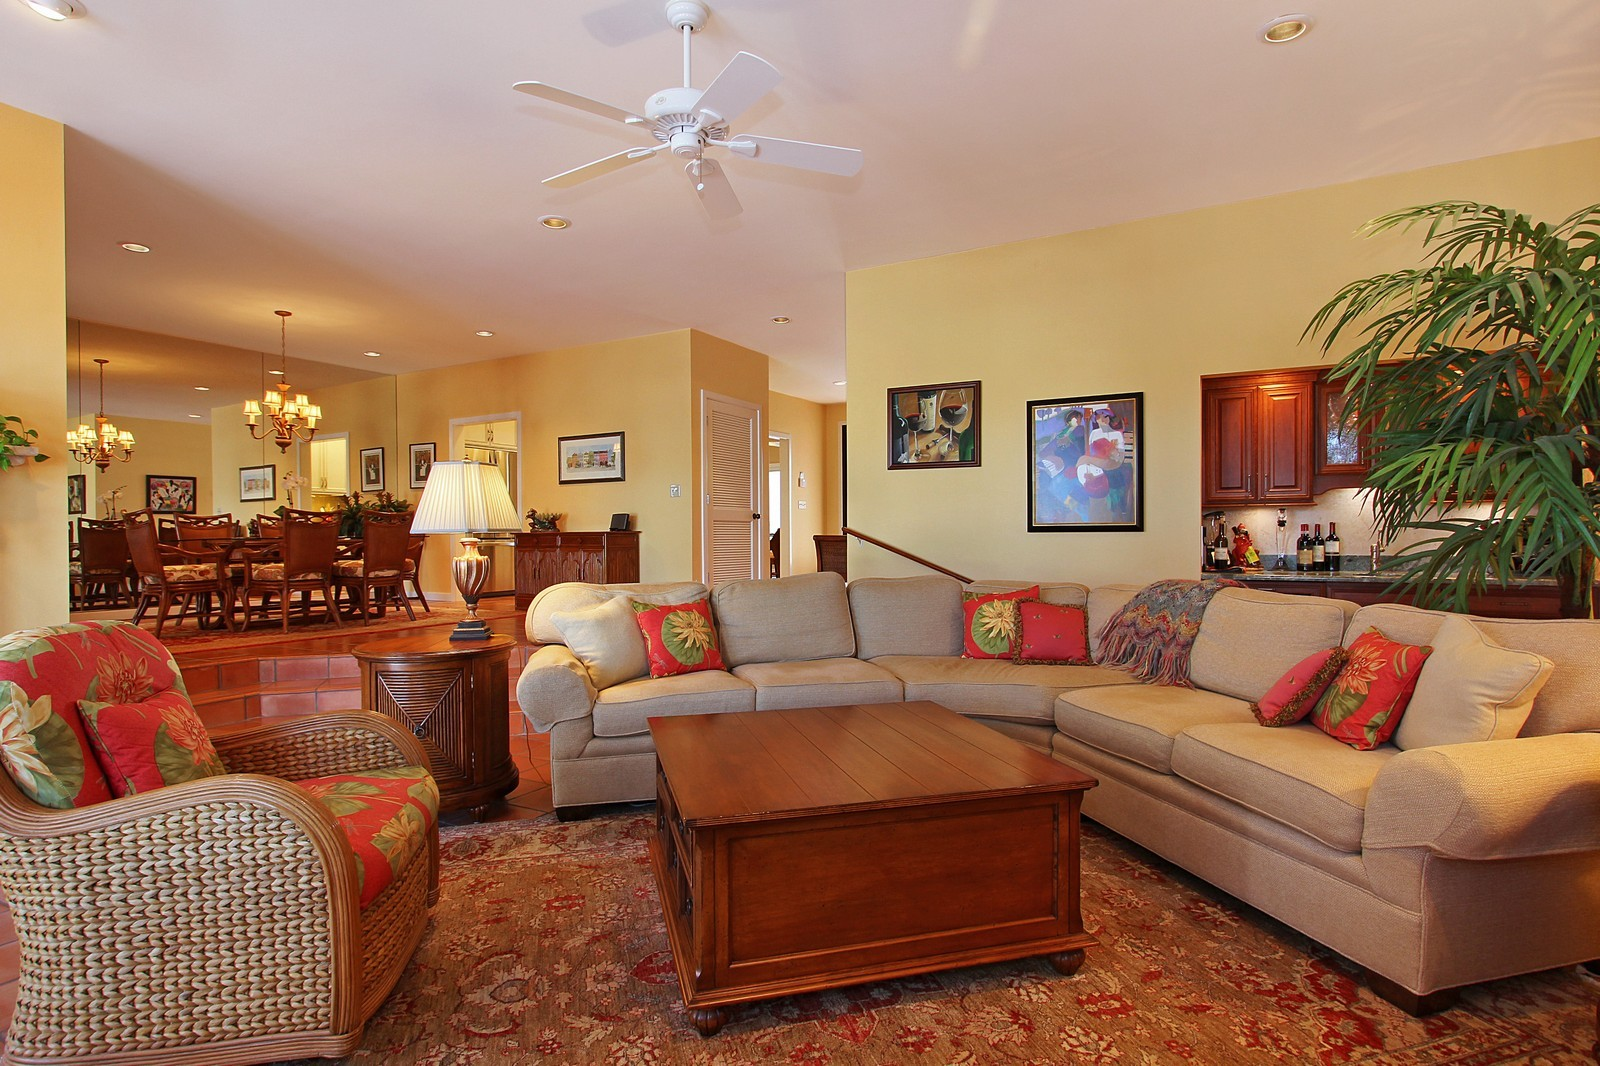 Real Estate Photography - 6509 SE South Marina Way, Stuart, FL, 34996 - Living Room / Dining Room